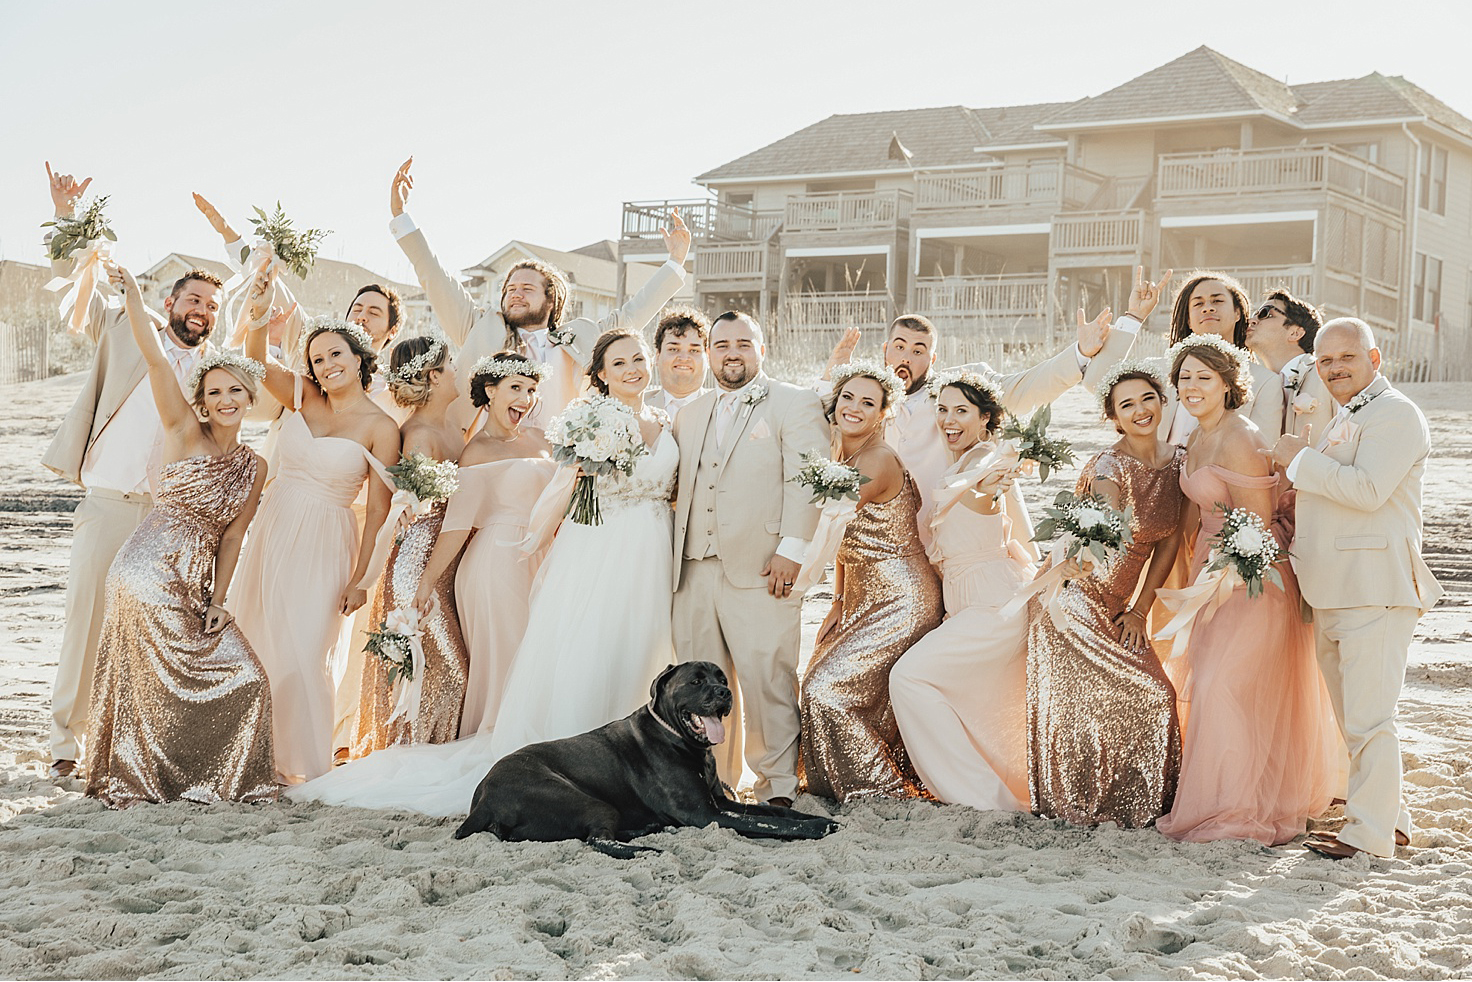 blushes, neutrals, and rose gold are the perfect combination for a high texture beach wedding! Who said sequins were not a neutral? Revelry certainly didn't.